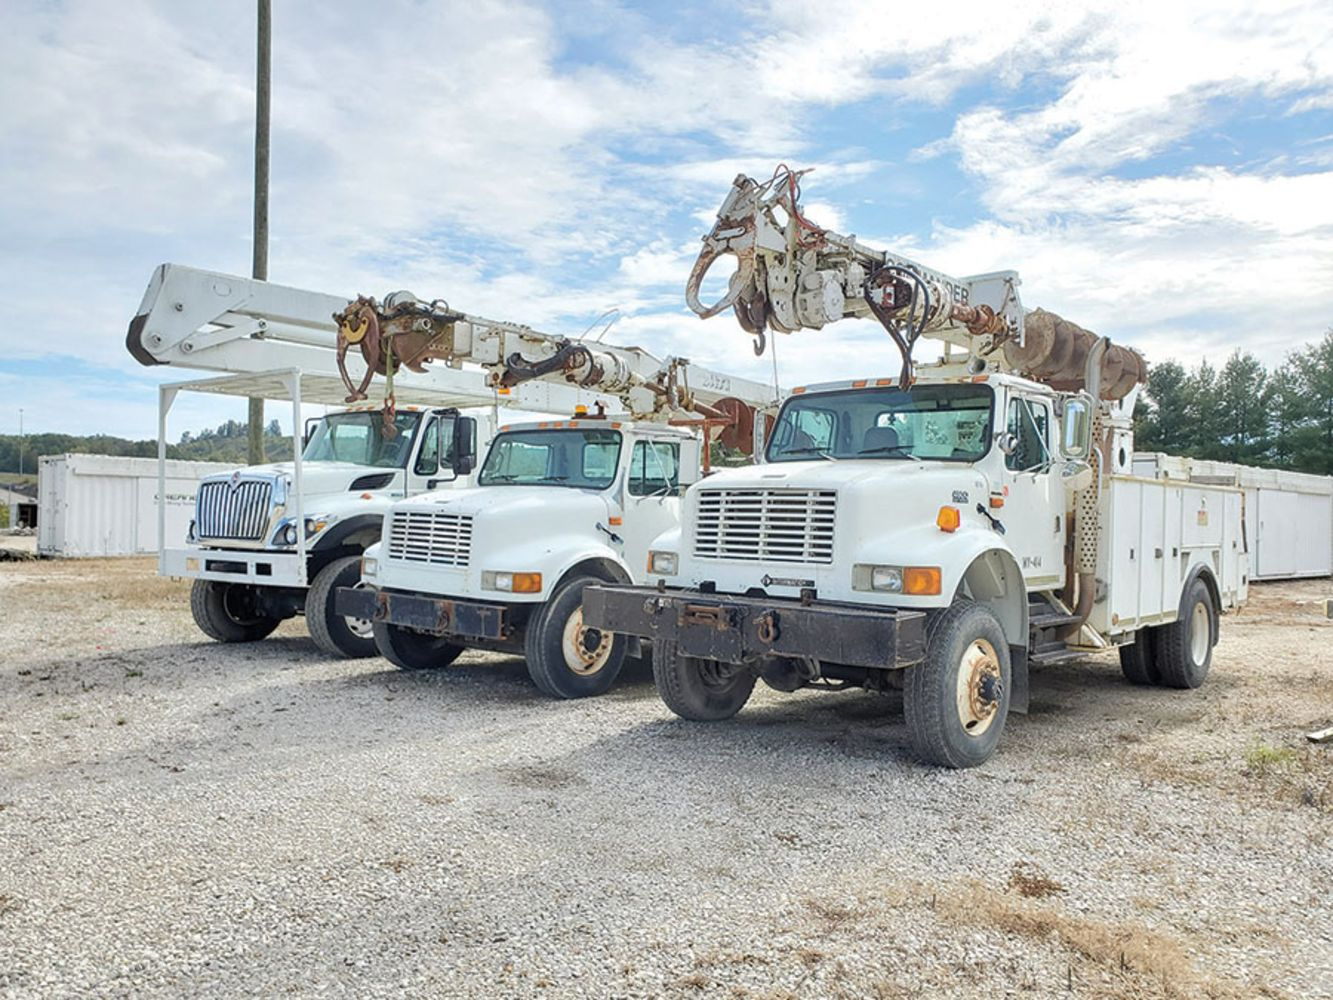 CW Electric Inc. - DAY 2 OF 2 - Huge Amount of CATERPILLAR Repair Parts, Utility Trucks & More!